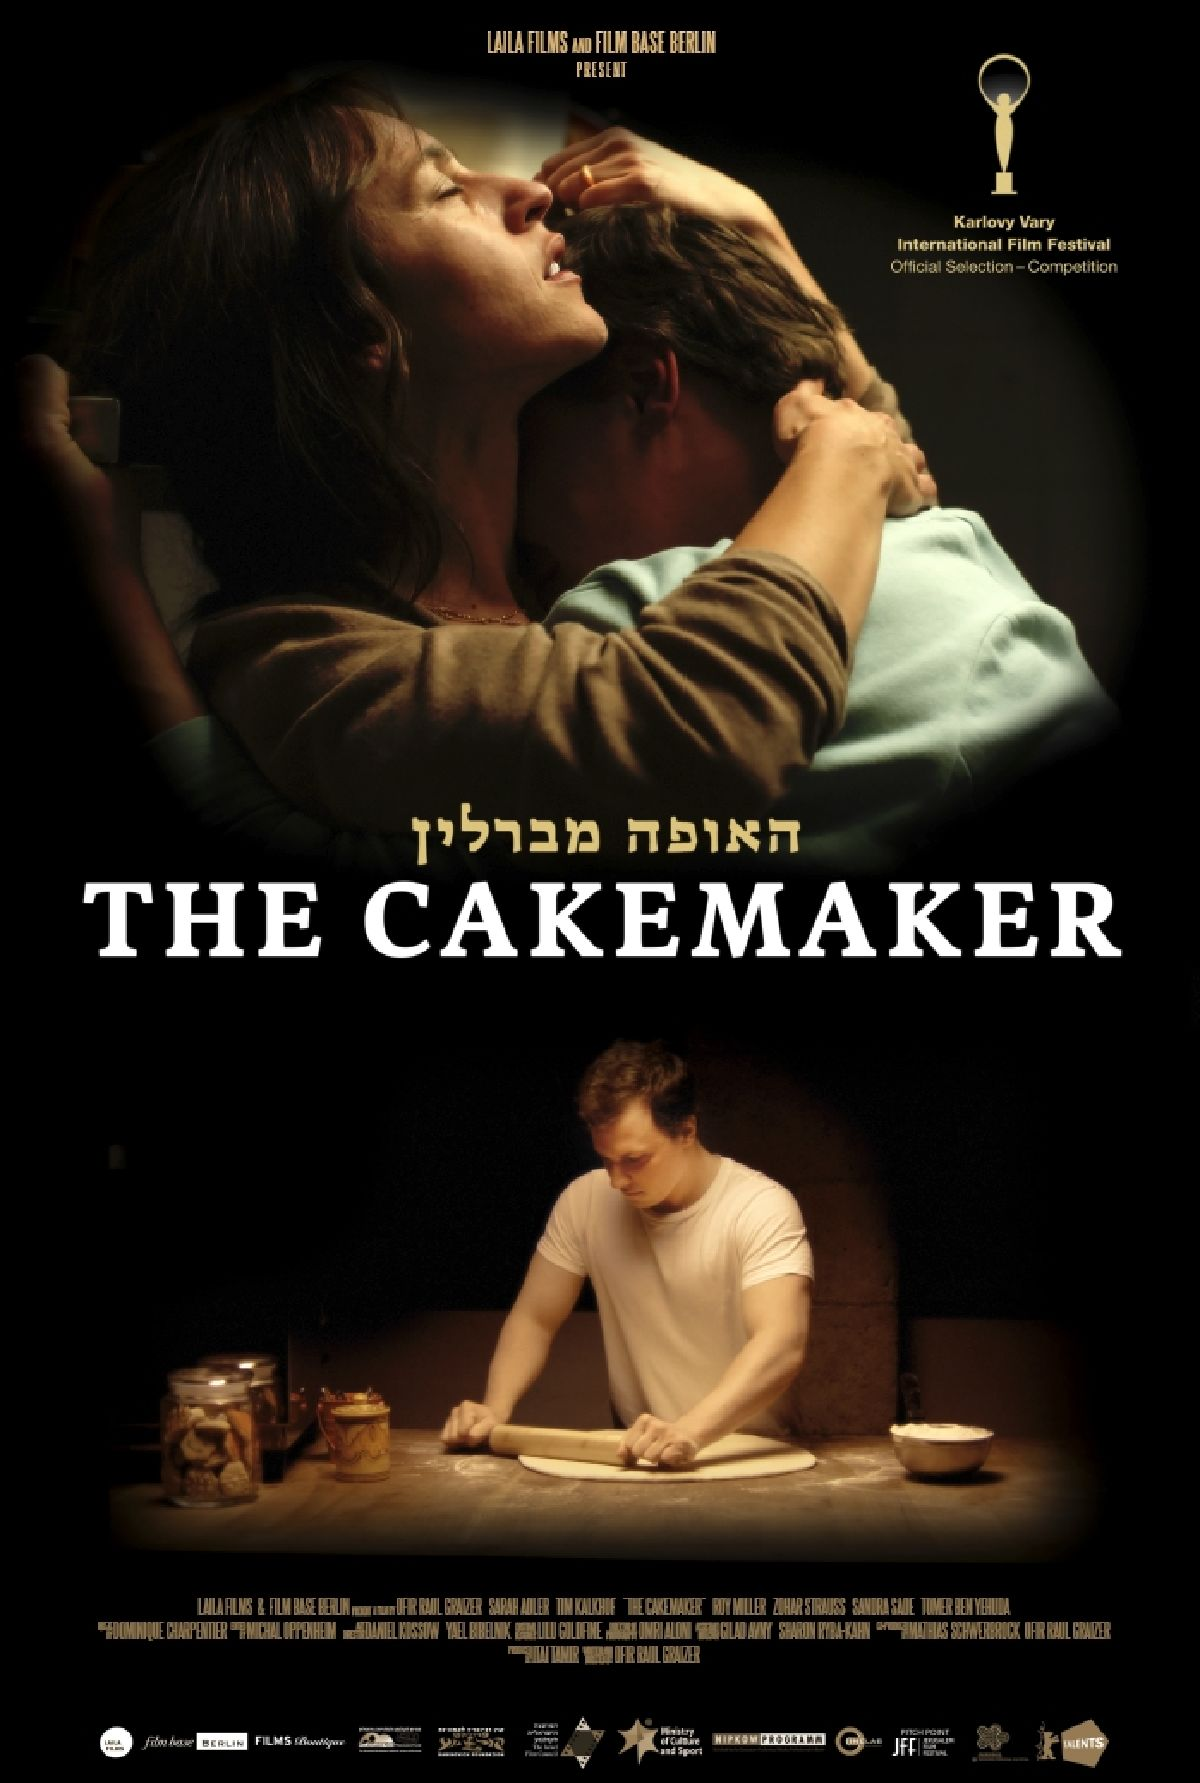 'The Cakemaker' movie poster